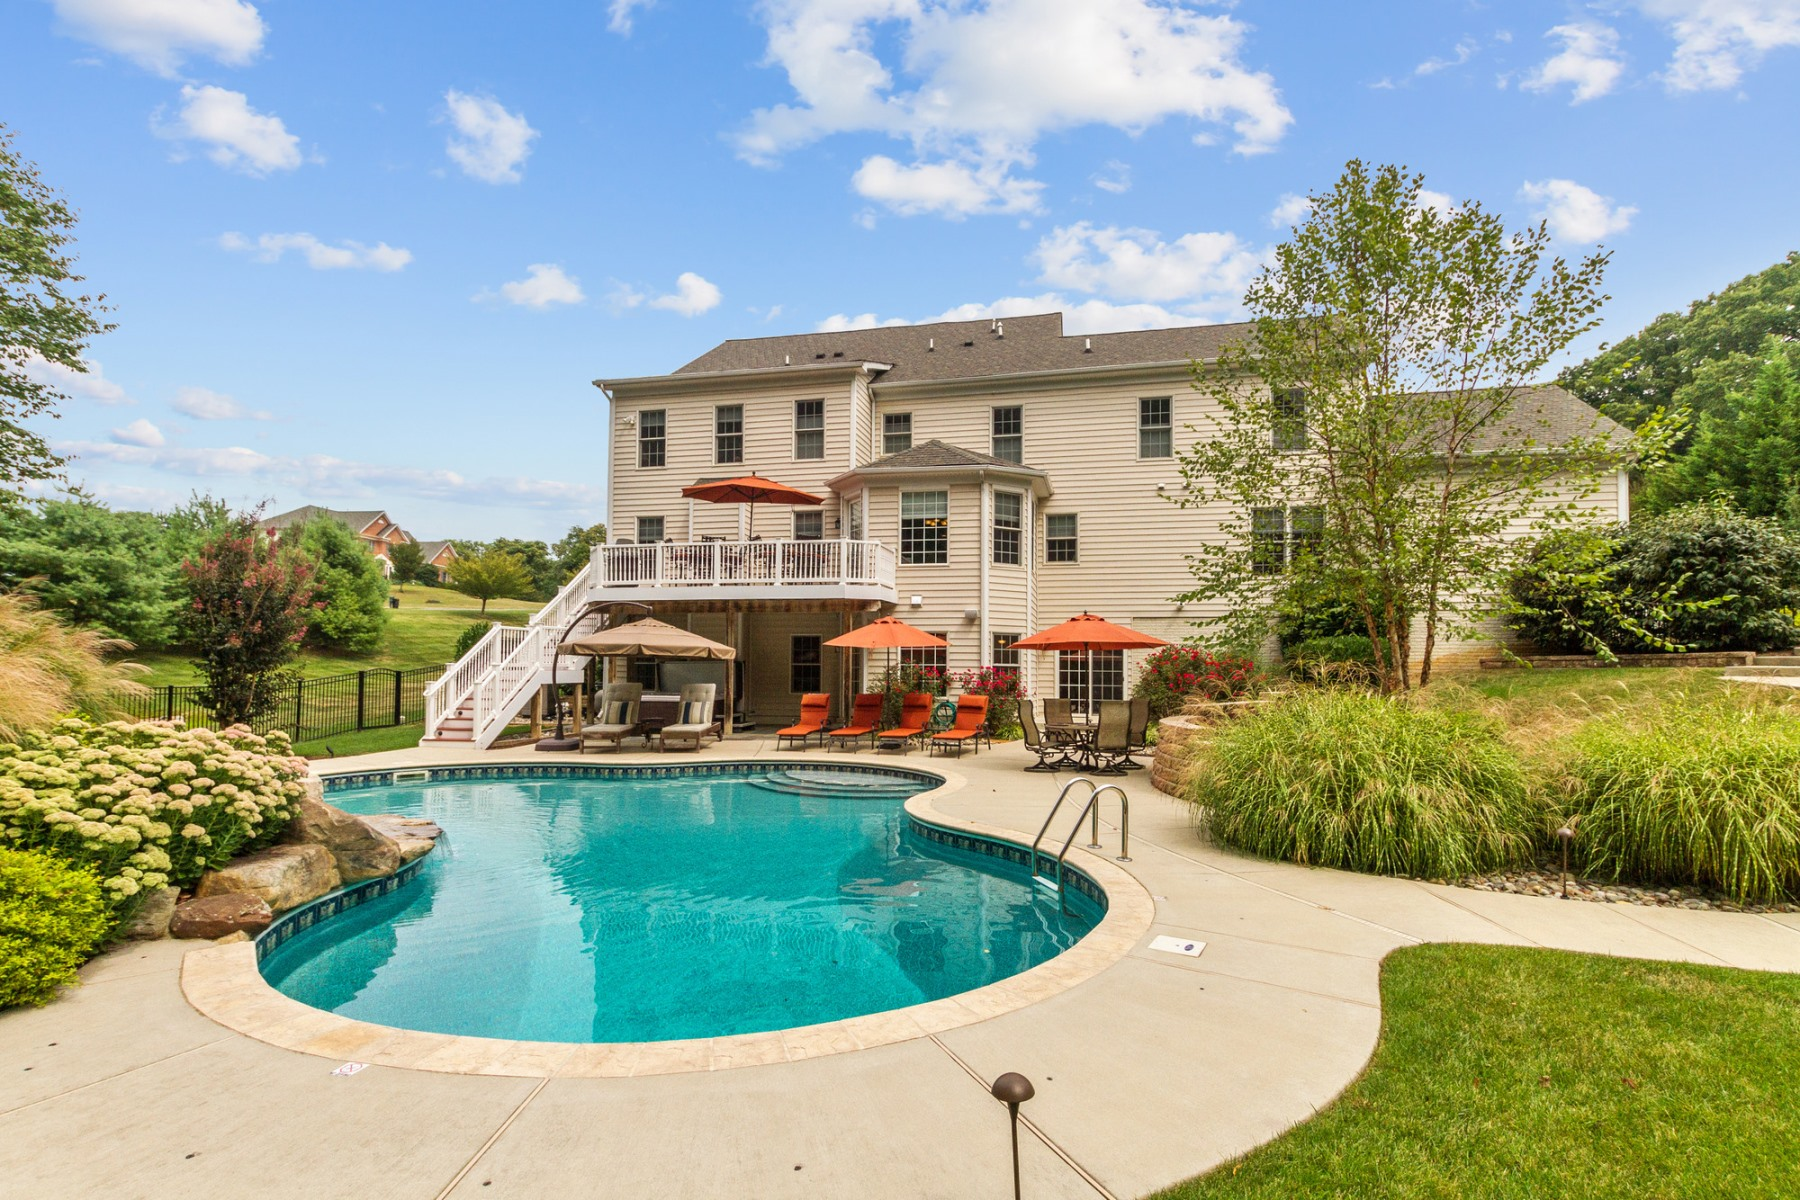 Additional photo for property listing at 9013 Magruder Knolls Court, Gaithersburg 9013 Magruder Knolls Ct Gaithersburg, Maryland 20882 Estados Unidos